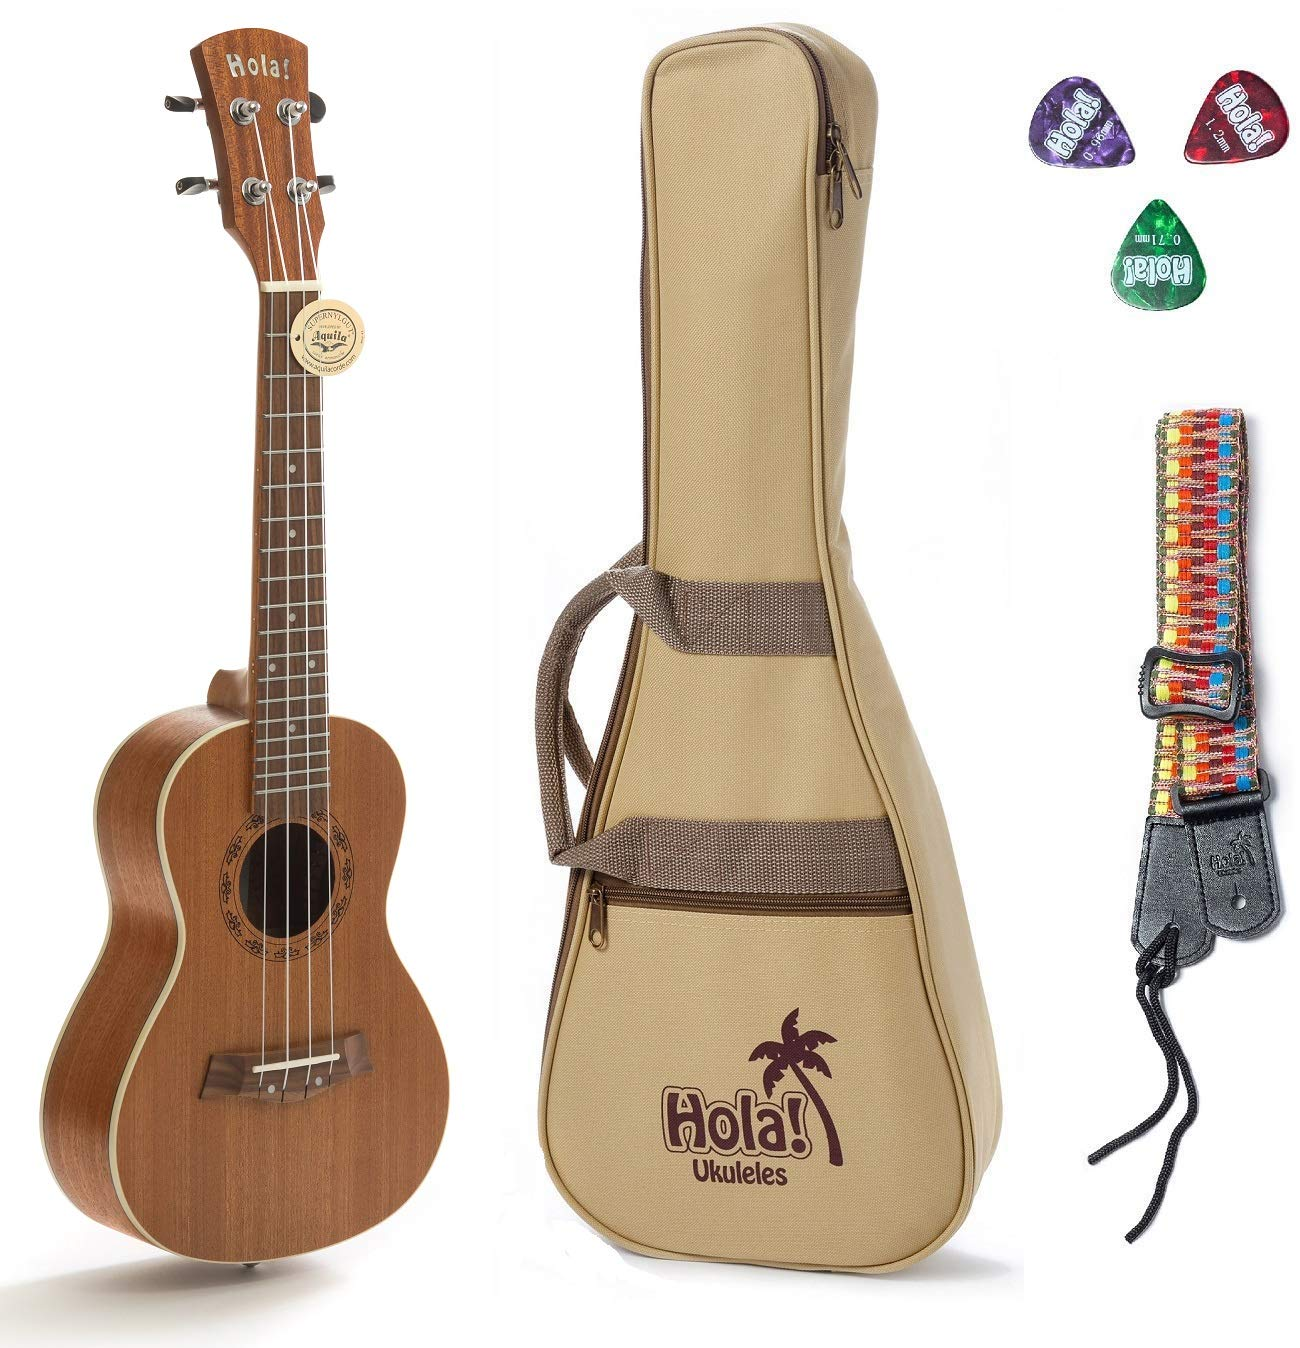 Concert Ukulele Bundle, Deluxe Series by Hola! Music (Model HM-124MG+), Bundle Includes: 24 Inch Mahogany Ukulele with Aquila Nylgut Strings Installed, Padded Gig Bag, Strap and Picks by Hola! Music